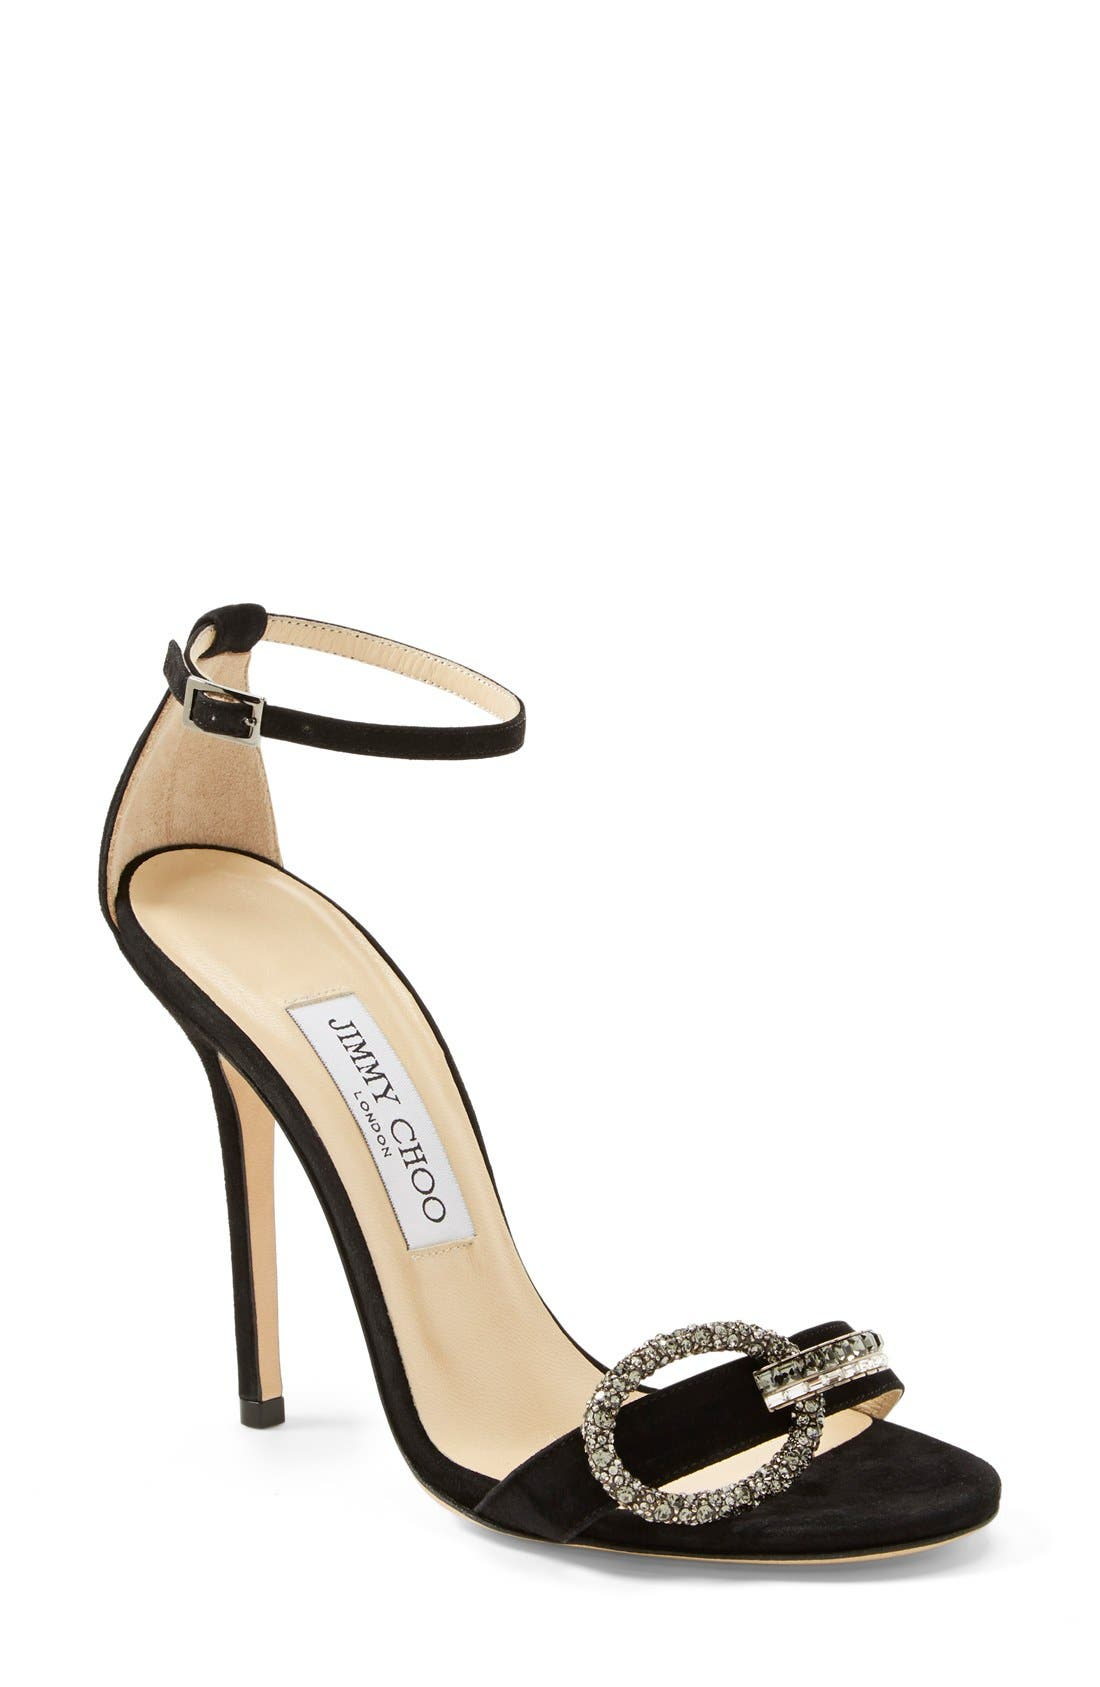 Alternate Image 1 Selected - Jimmy Choo 'Tamsyn' Suede Sandal (Women)